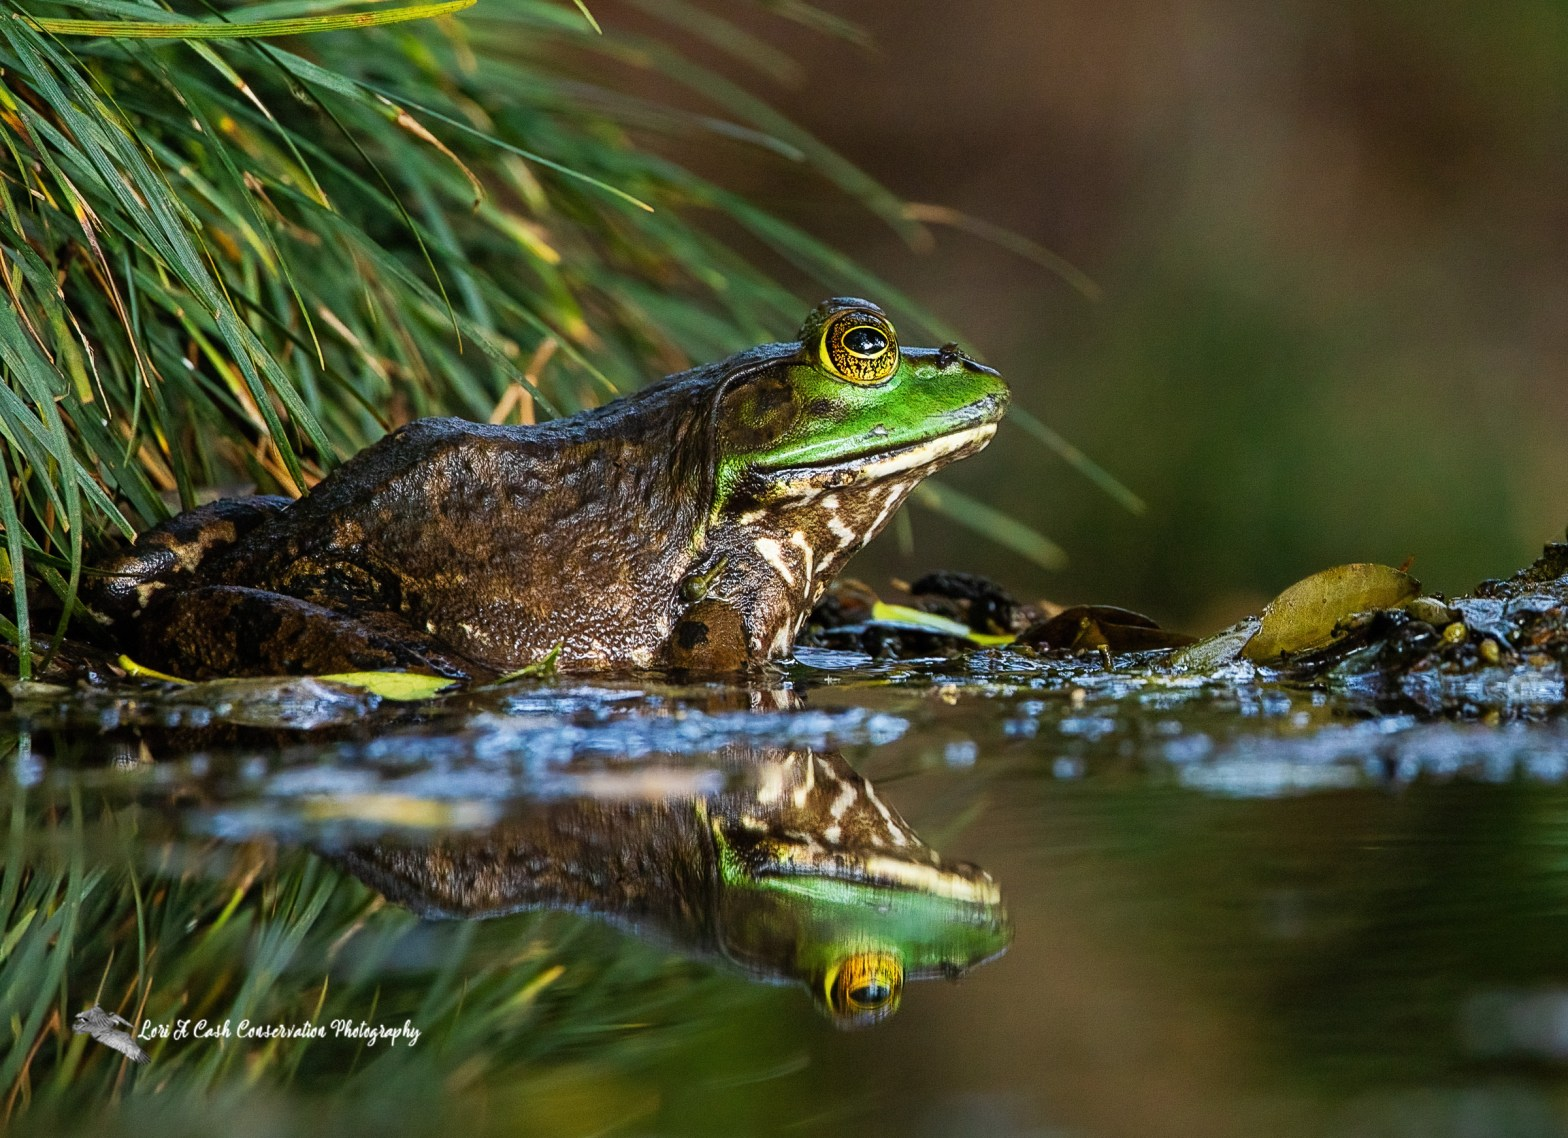 American bullfrog (Lithobates catesbeianus) sitting along the grass at edge of water with reflections in water at Norfolk Botanical Garden in Norfolk, Virginia.